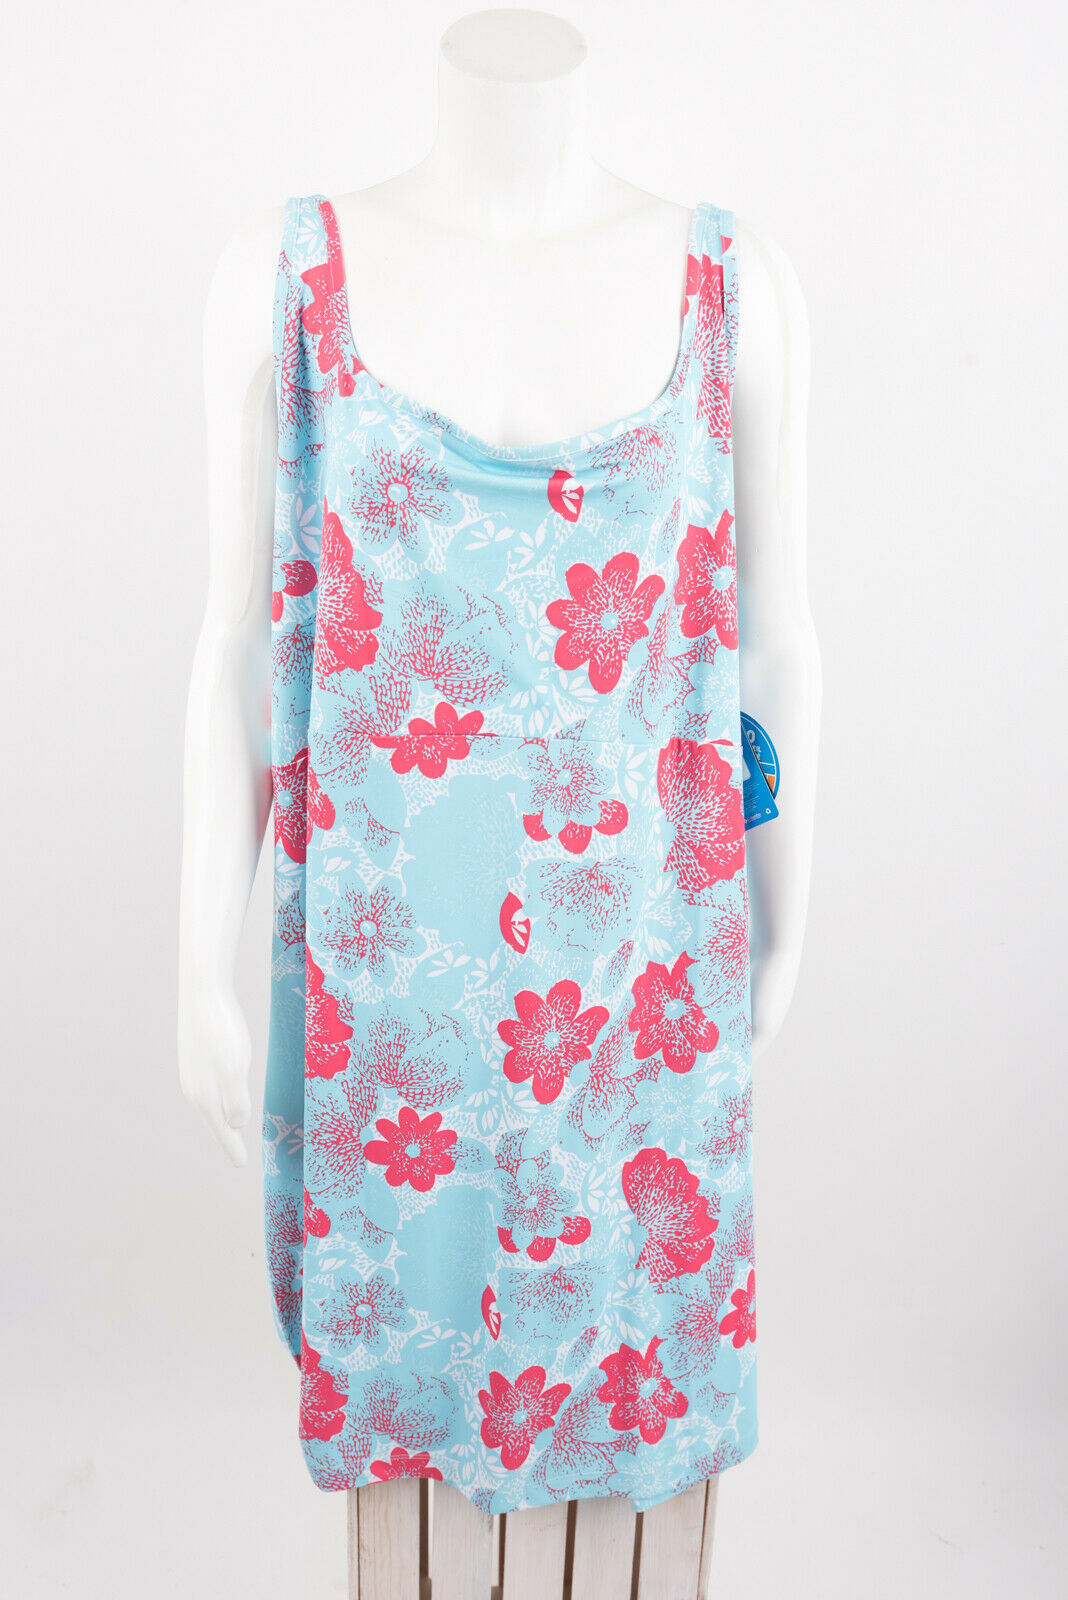 Primary image for Columbia Womens Freezer III Dress 3XL Cooling UPF 50 Blue Floral Sleeveless NWT